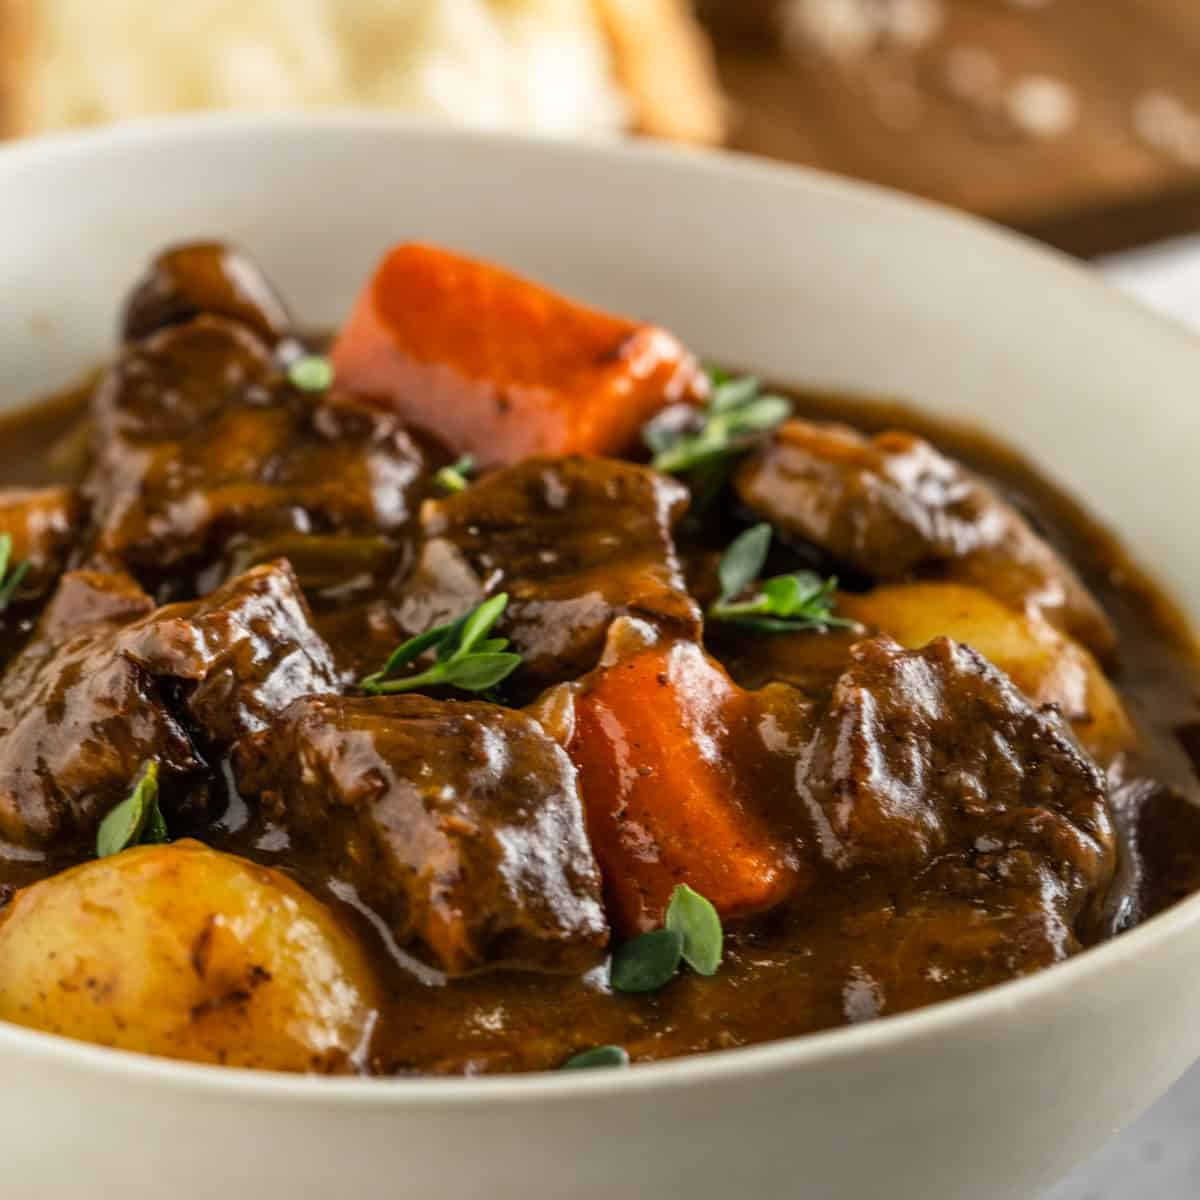 A bowl of beef stew with beef, carrots, potatoes and garnished with thyme